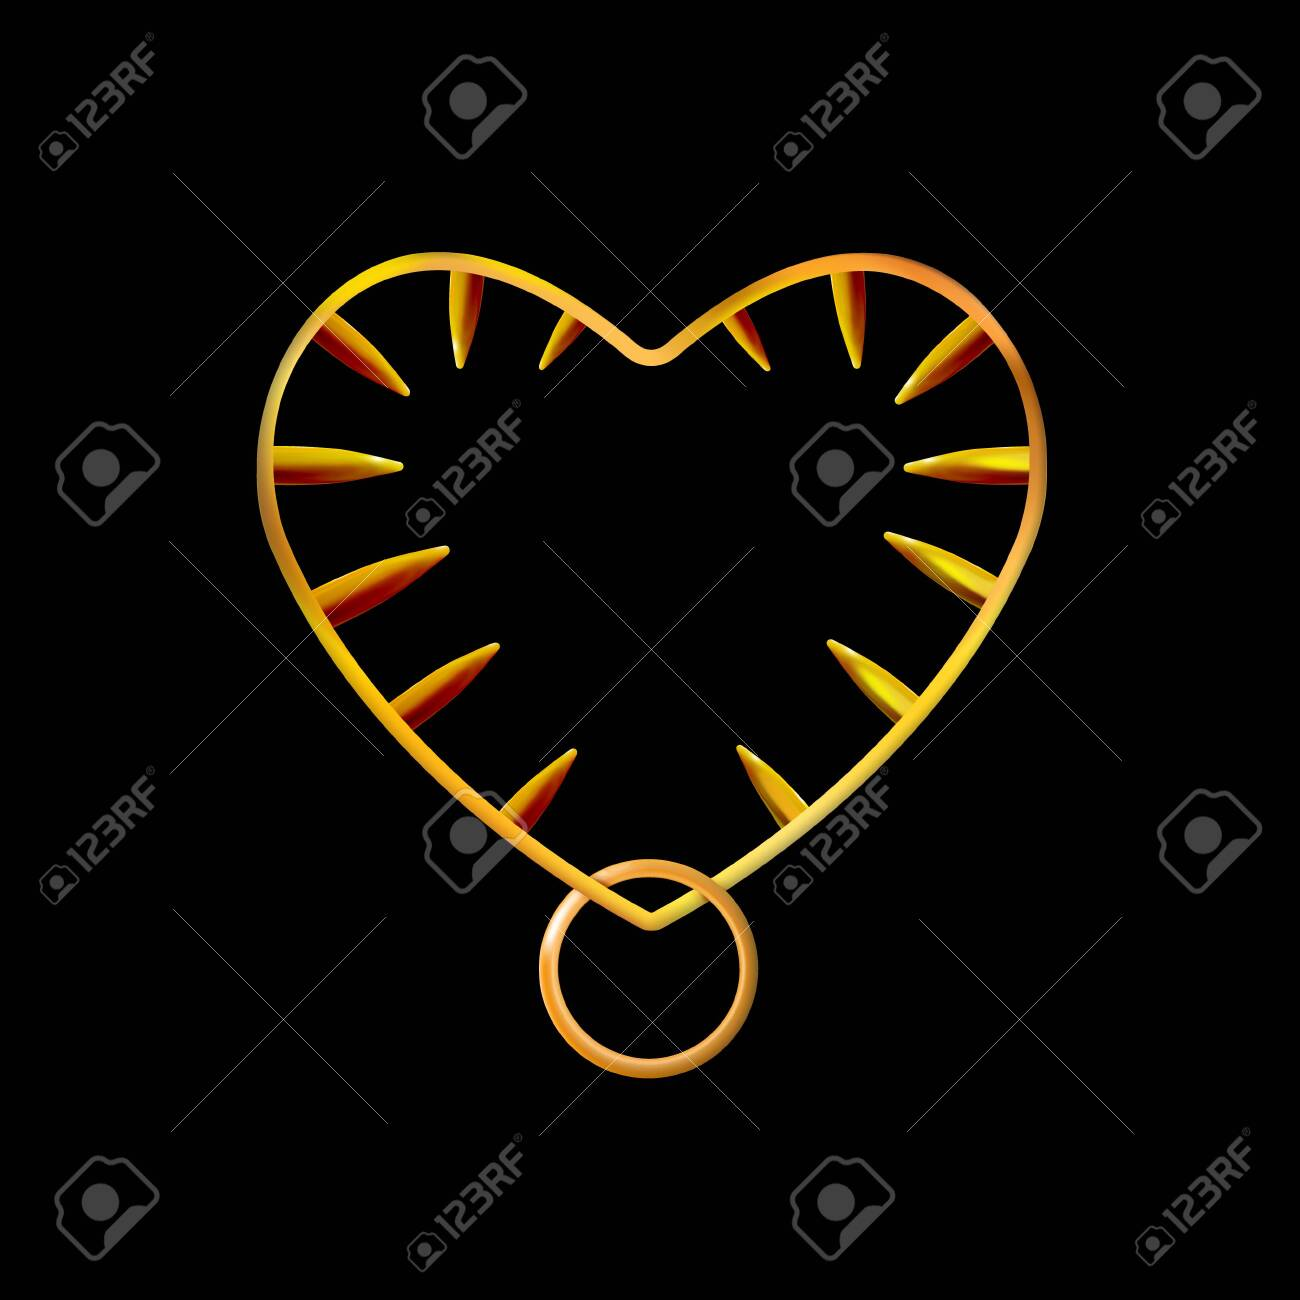 Golden heart shaped frame or collar, spiked. Gold jewelry isolated on black background. Vector illustration. - 137324957